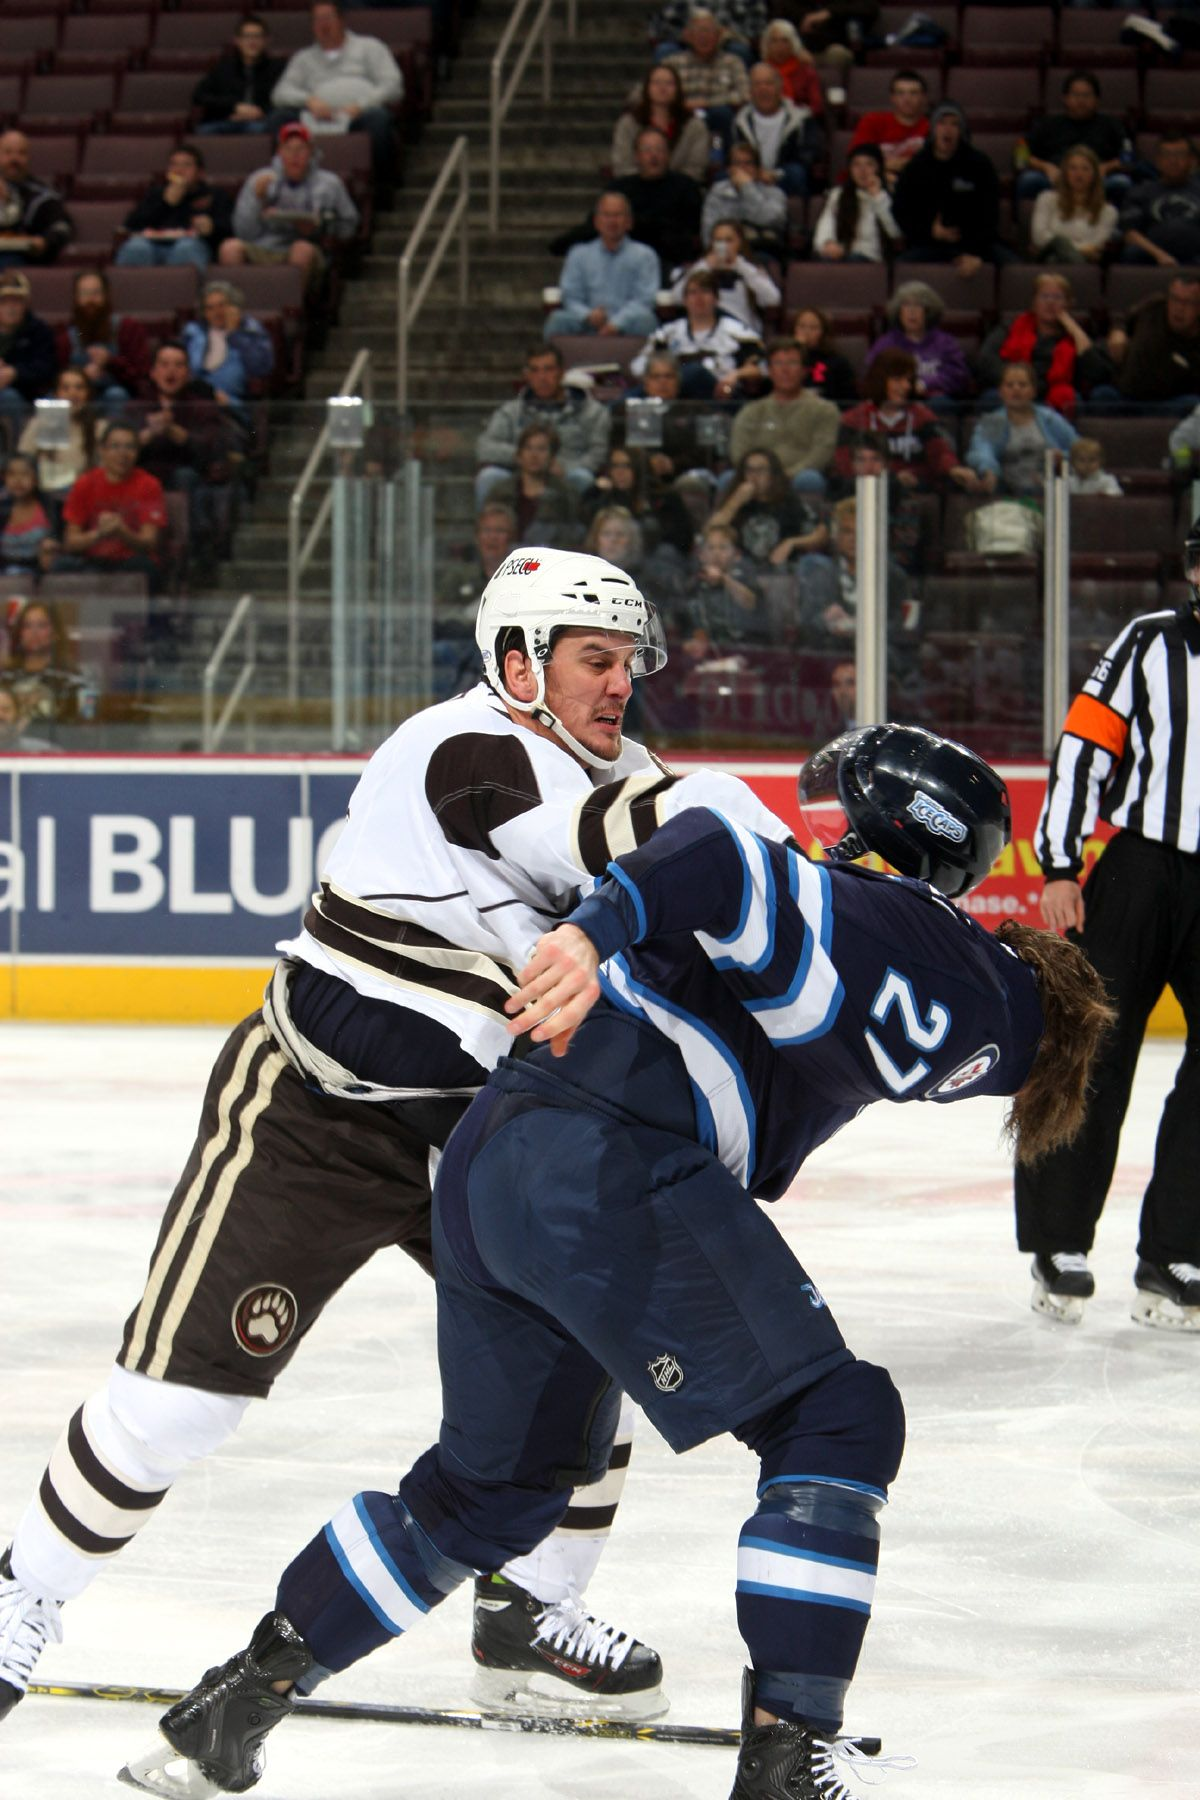 8b1c58e9016 11.30.14 - Hershey Bears forward